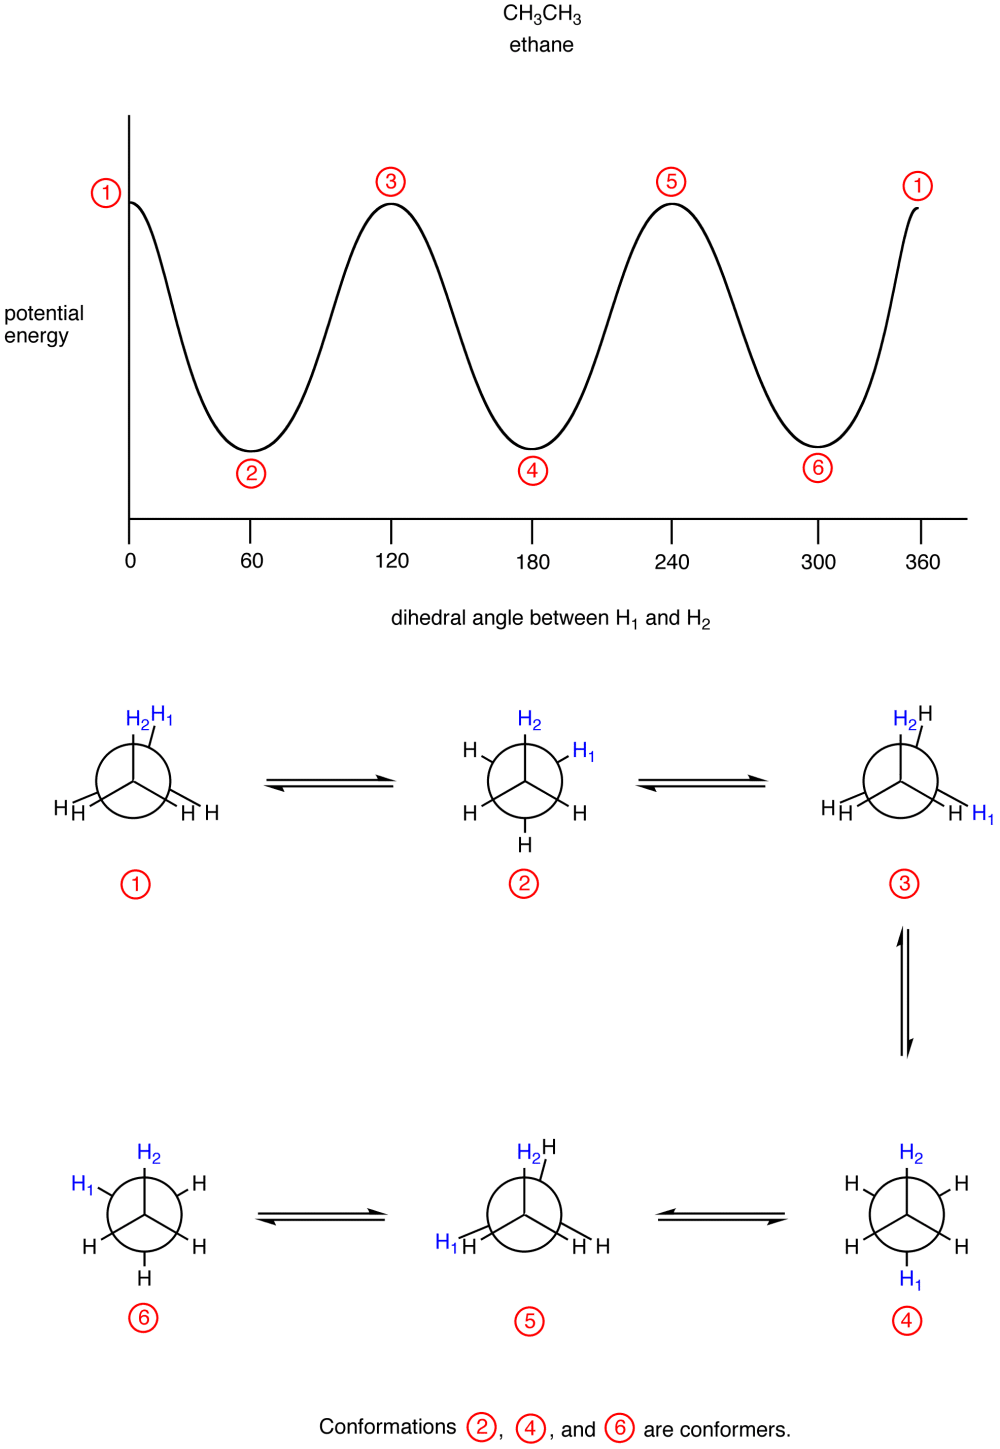 medium resolution of eg shown below is the potential energy diagram of conformations of ethane